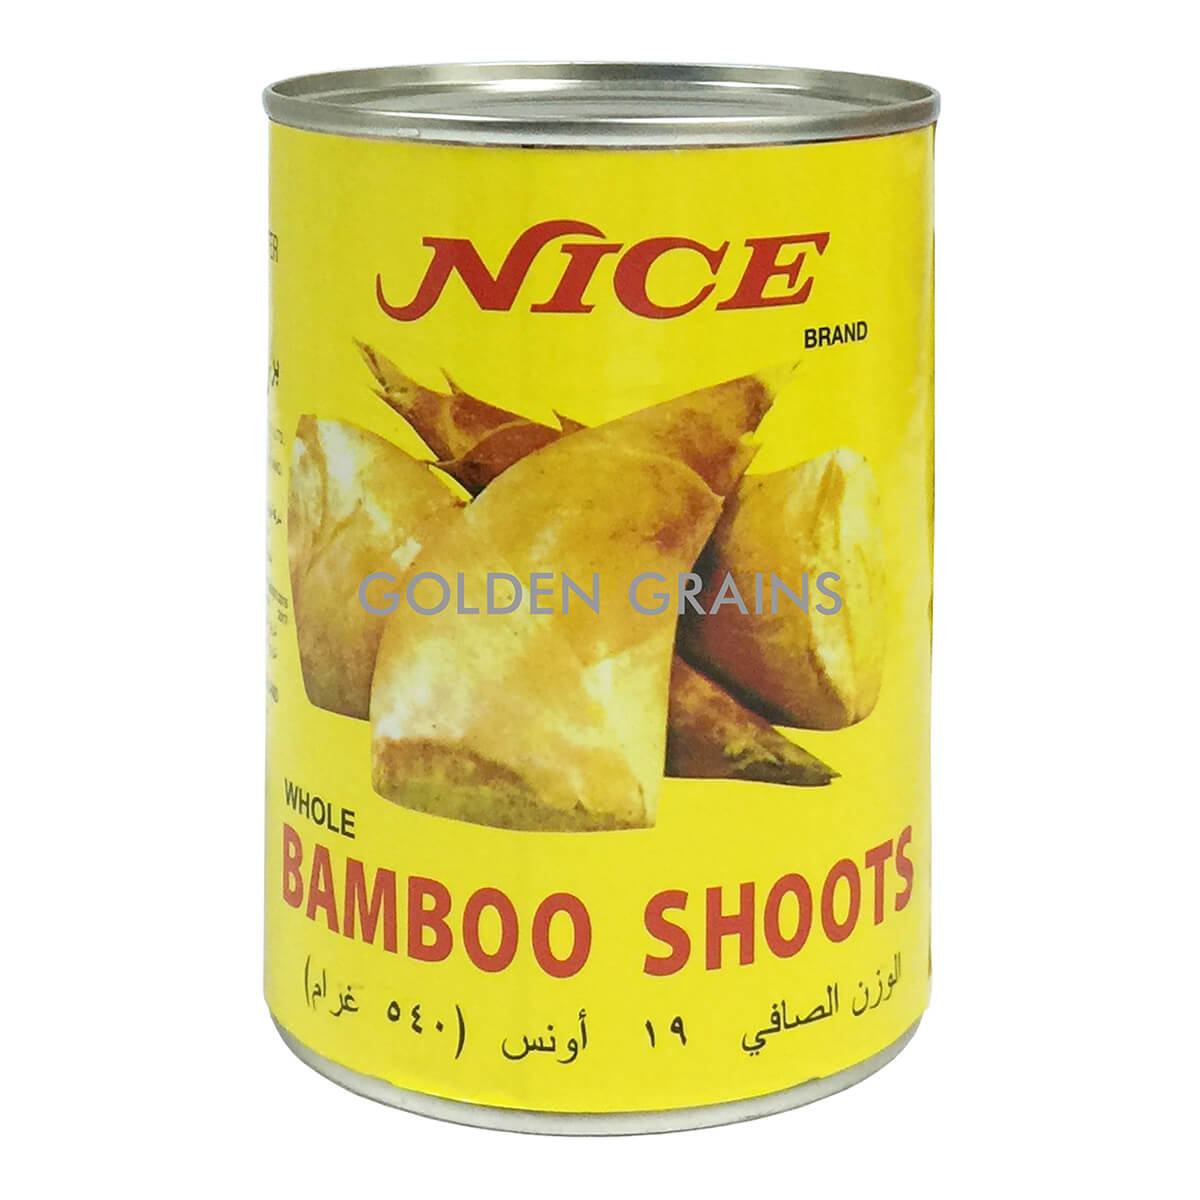 Golden Grains Dubai Export - Nice - Bamboo Shoots - Front.jpg